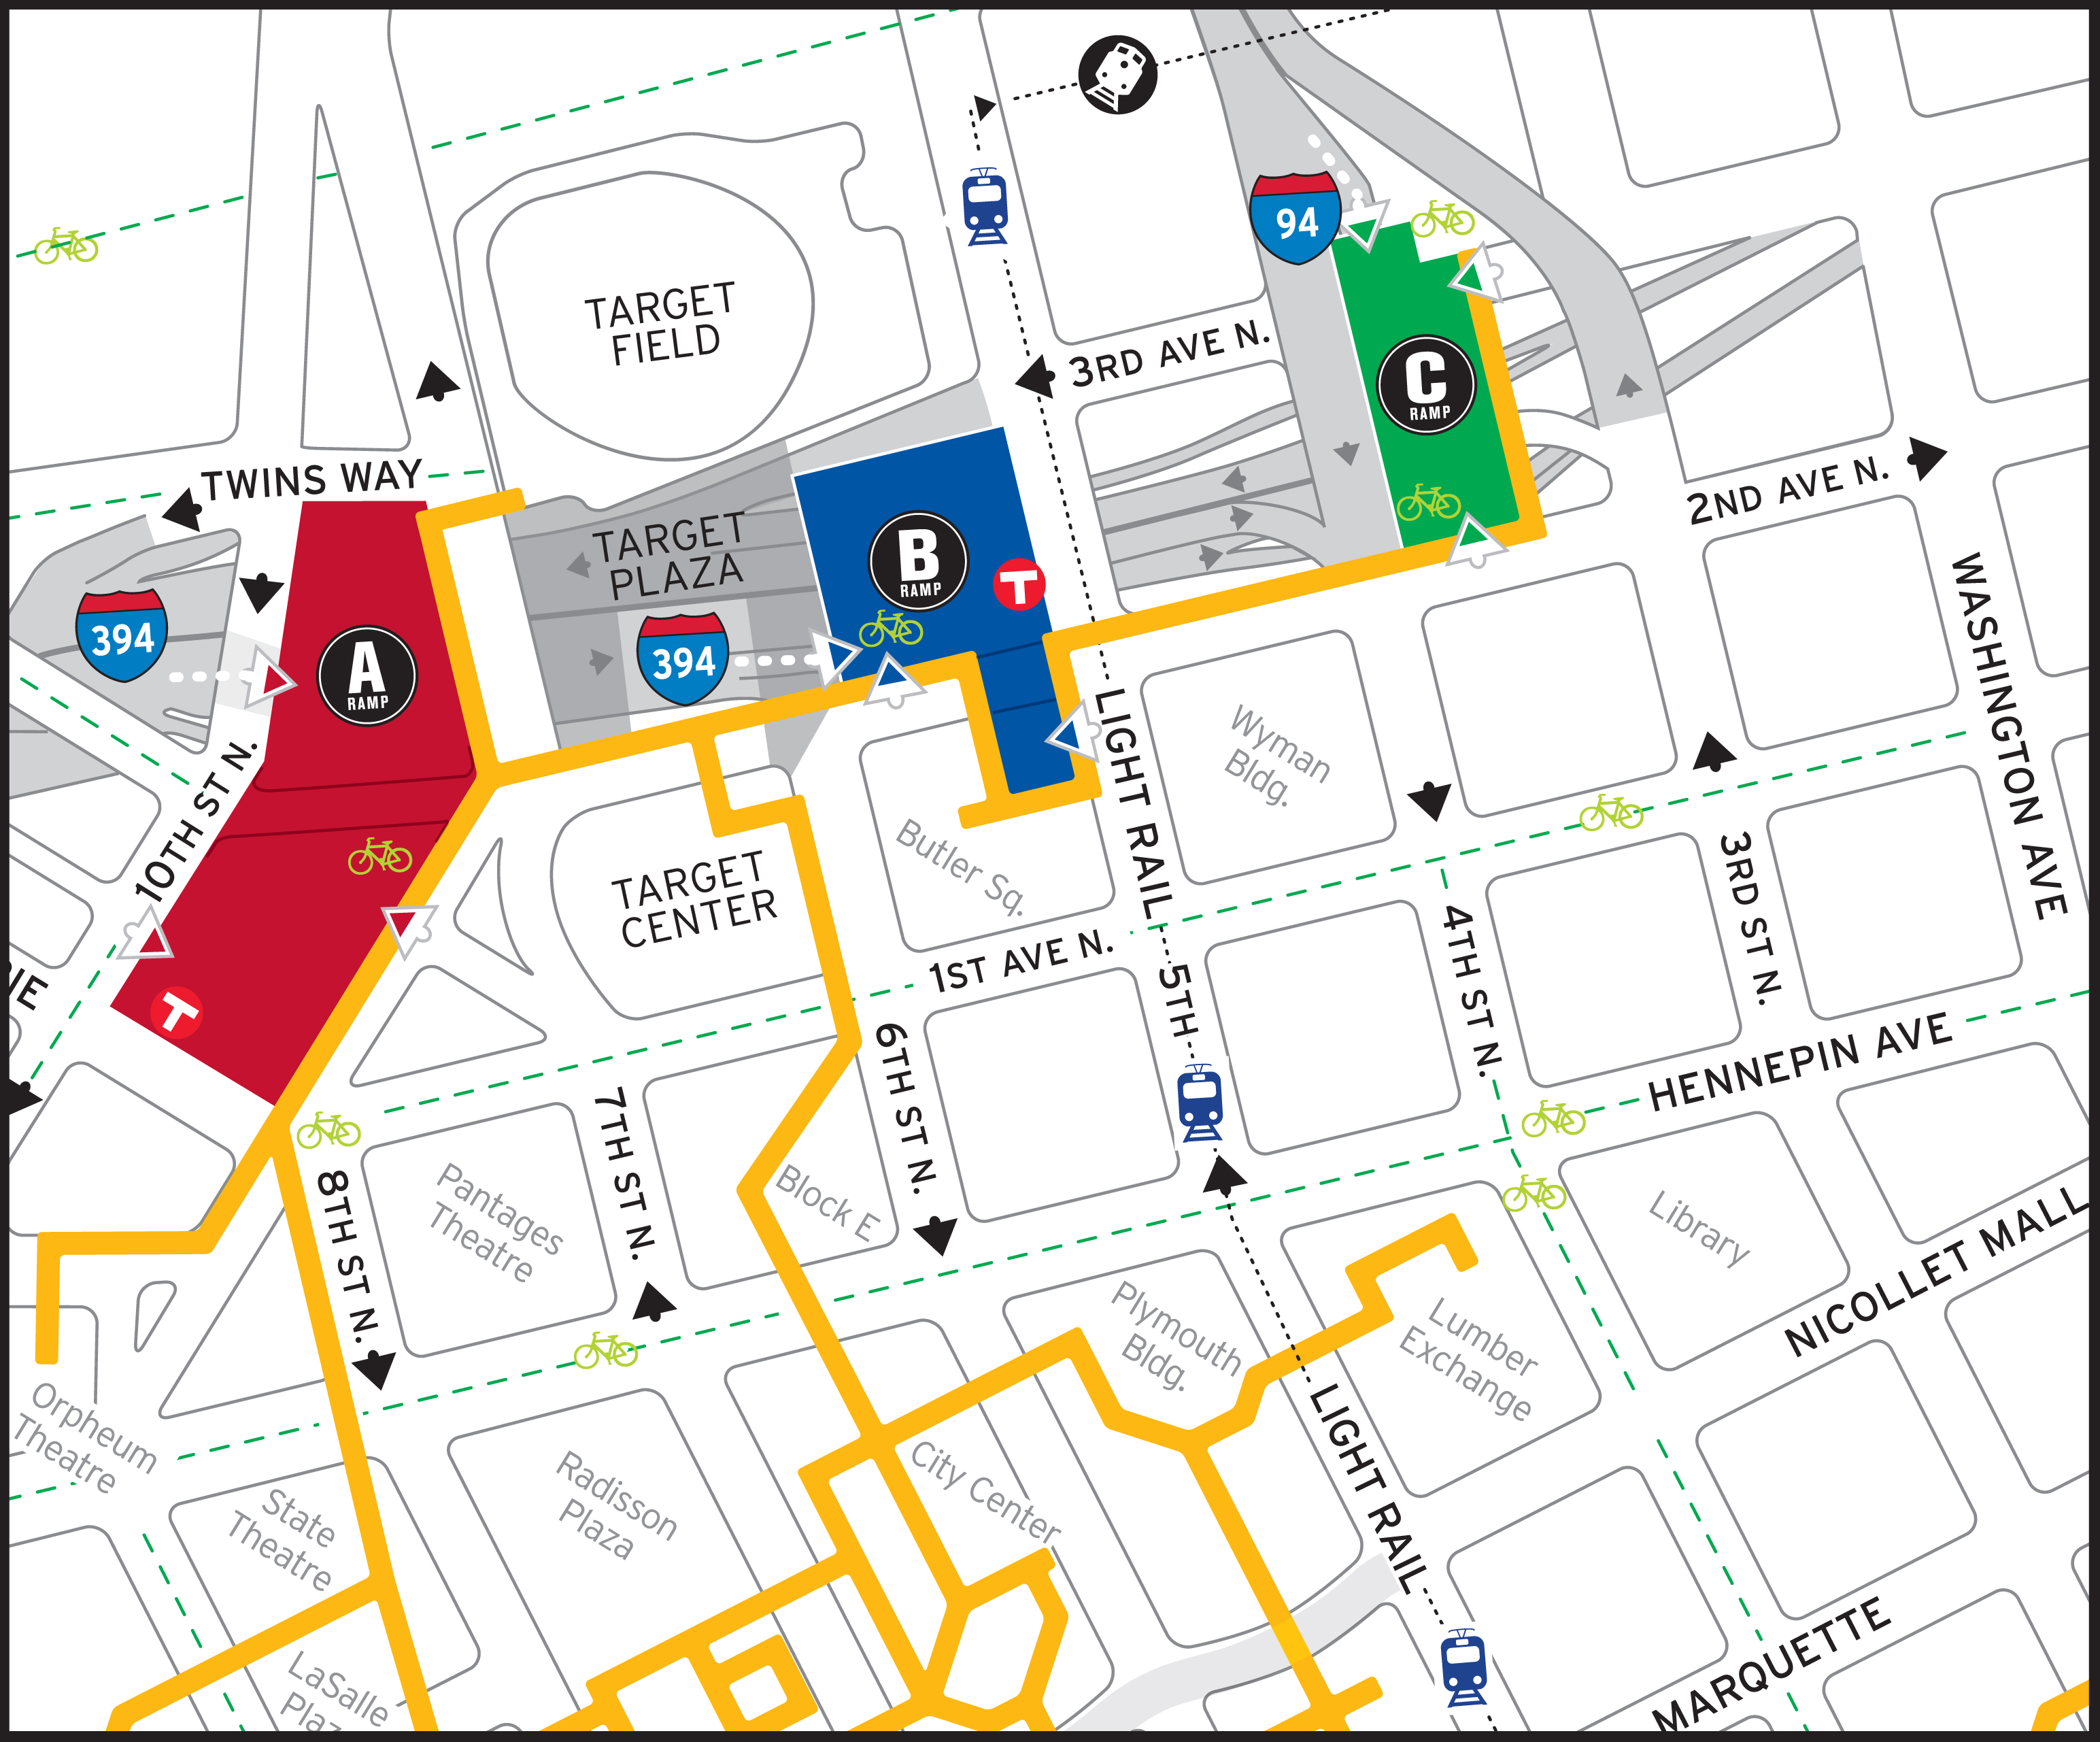 Twins Stadium Map Target Field Parking Guide: Tips, Maps, Deals | SPG